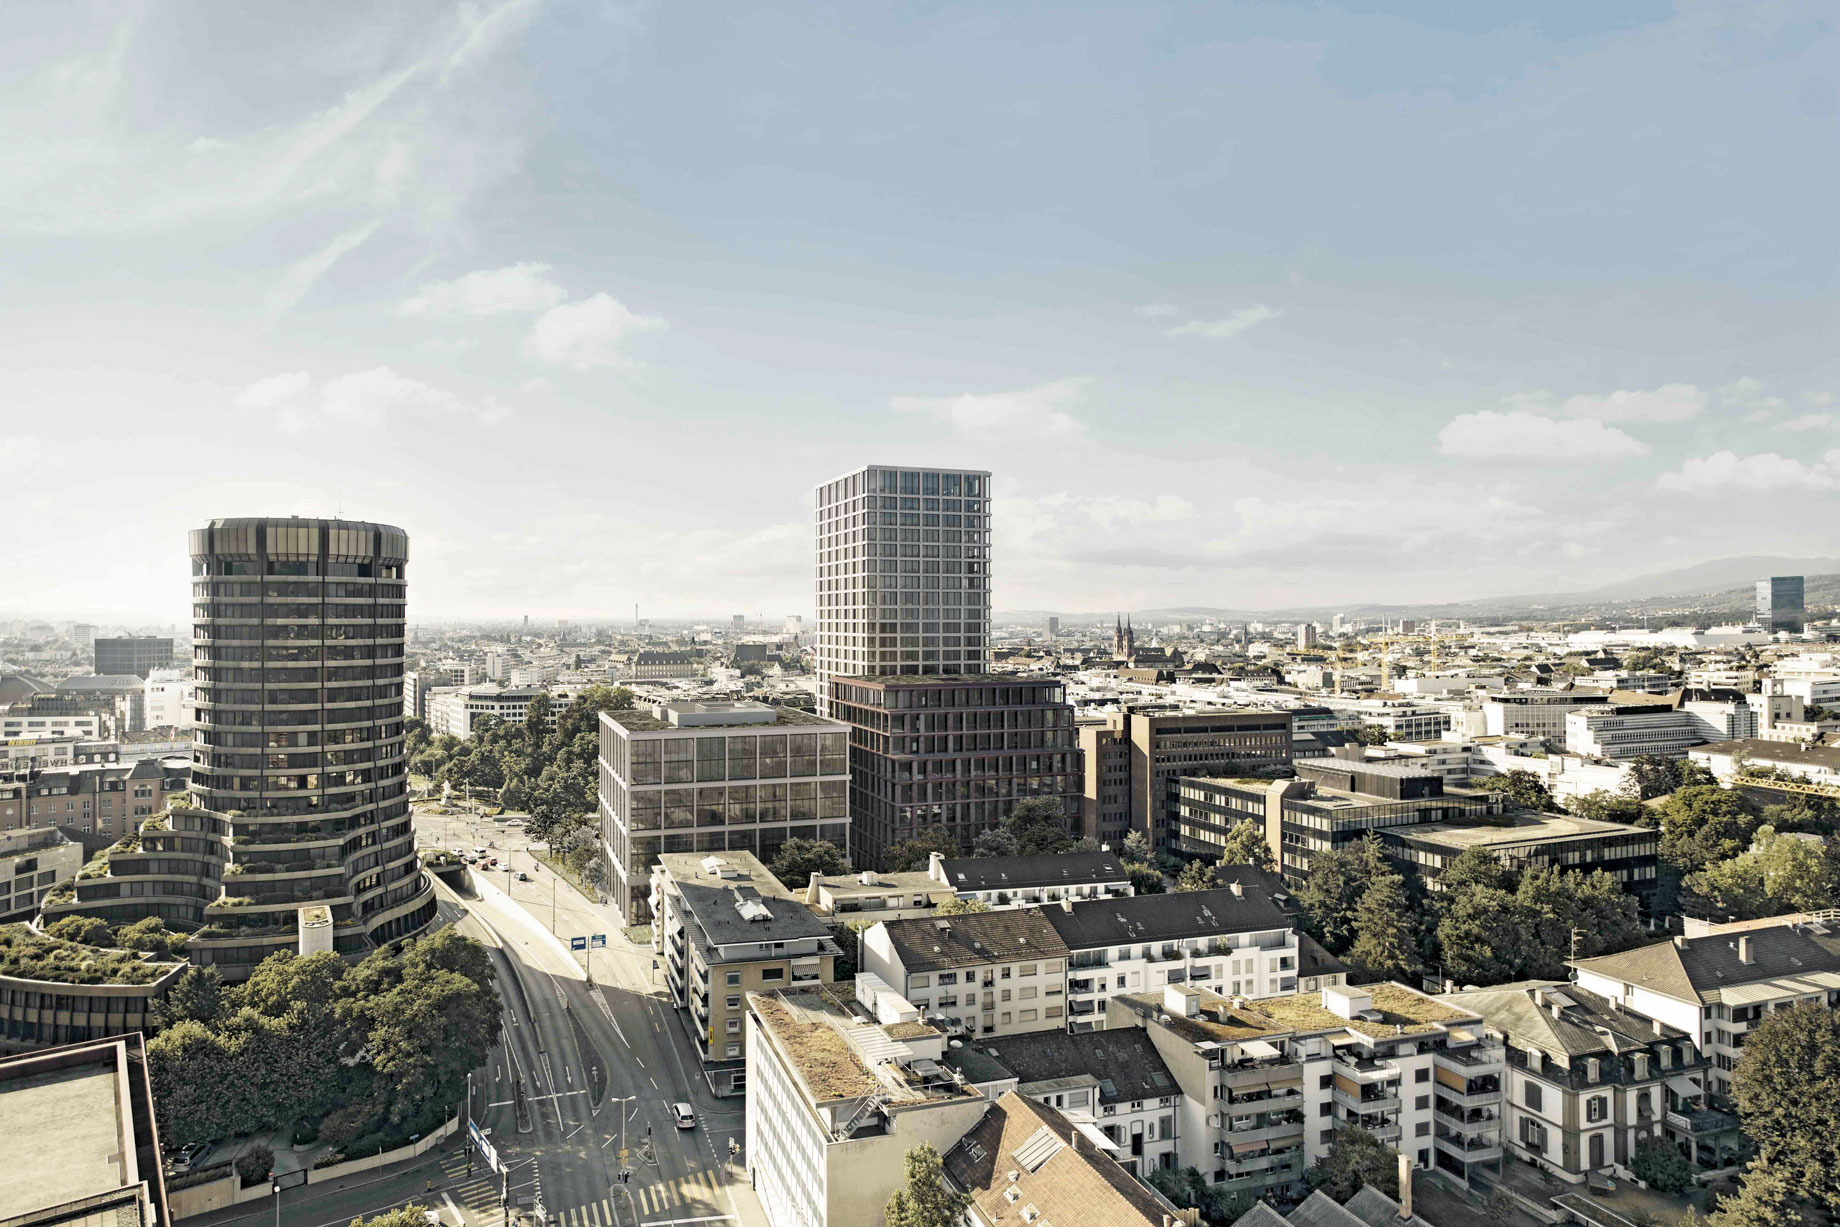 Visualisation: three state-of-the-art new buildings next to a green, park-like area; in the background, the rooftops of the city of Basel